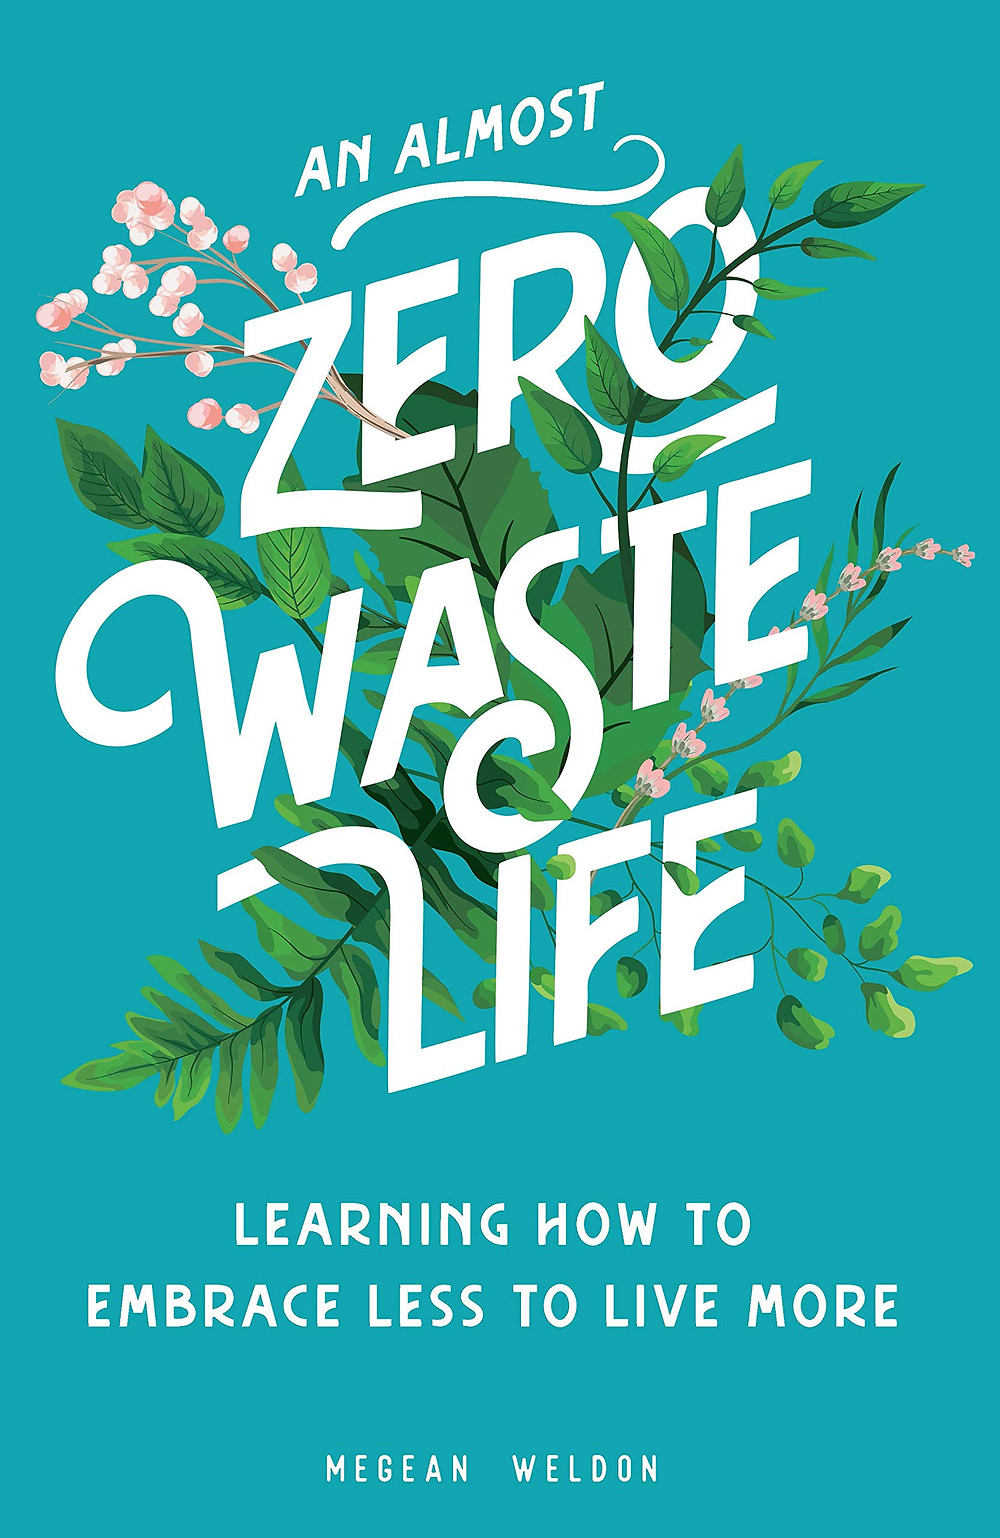 an almost zero waste life book